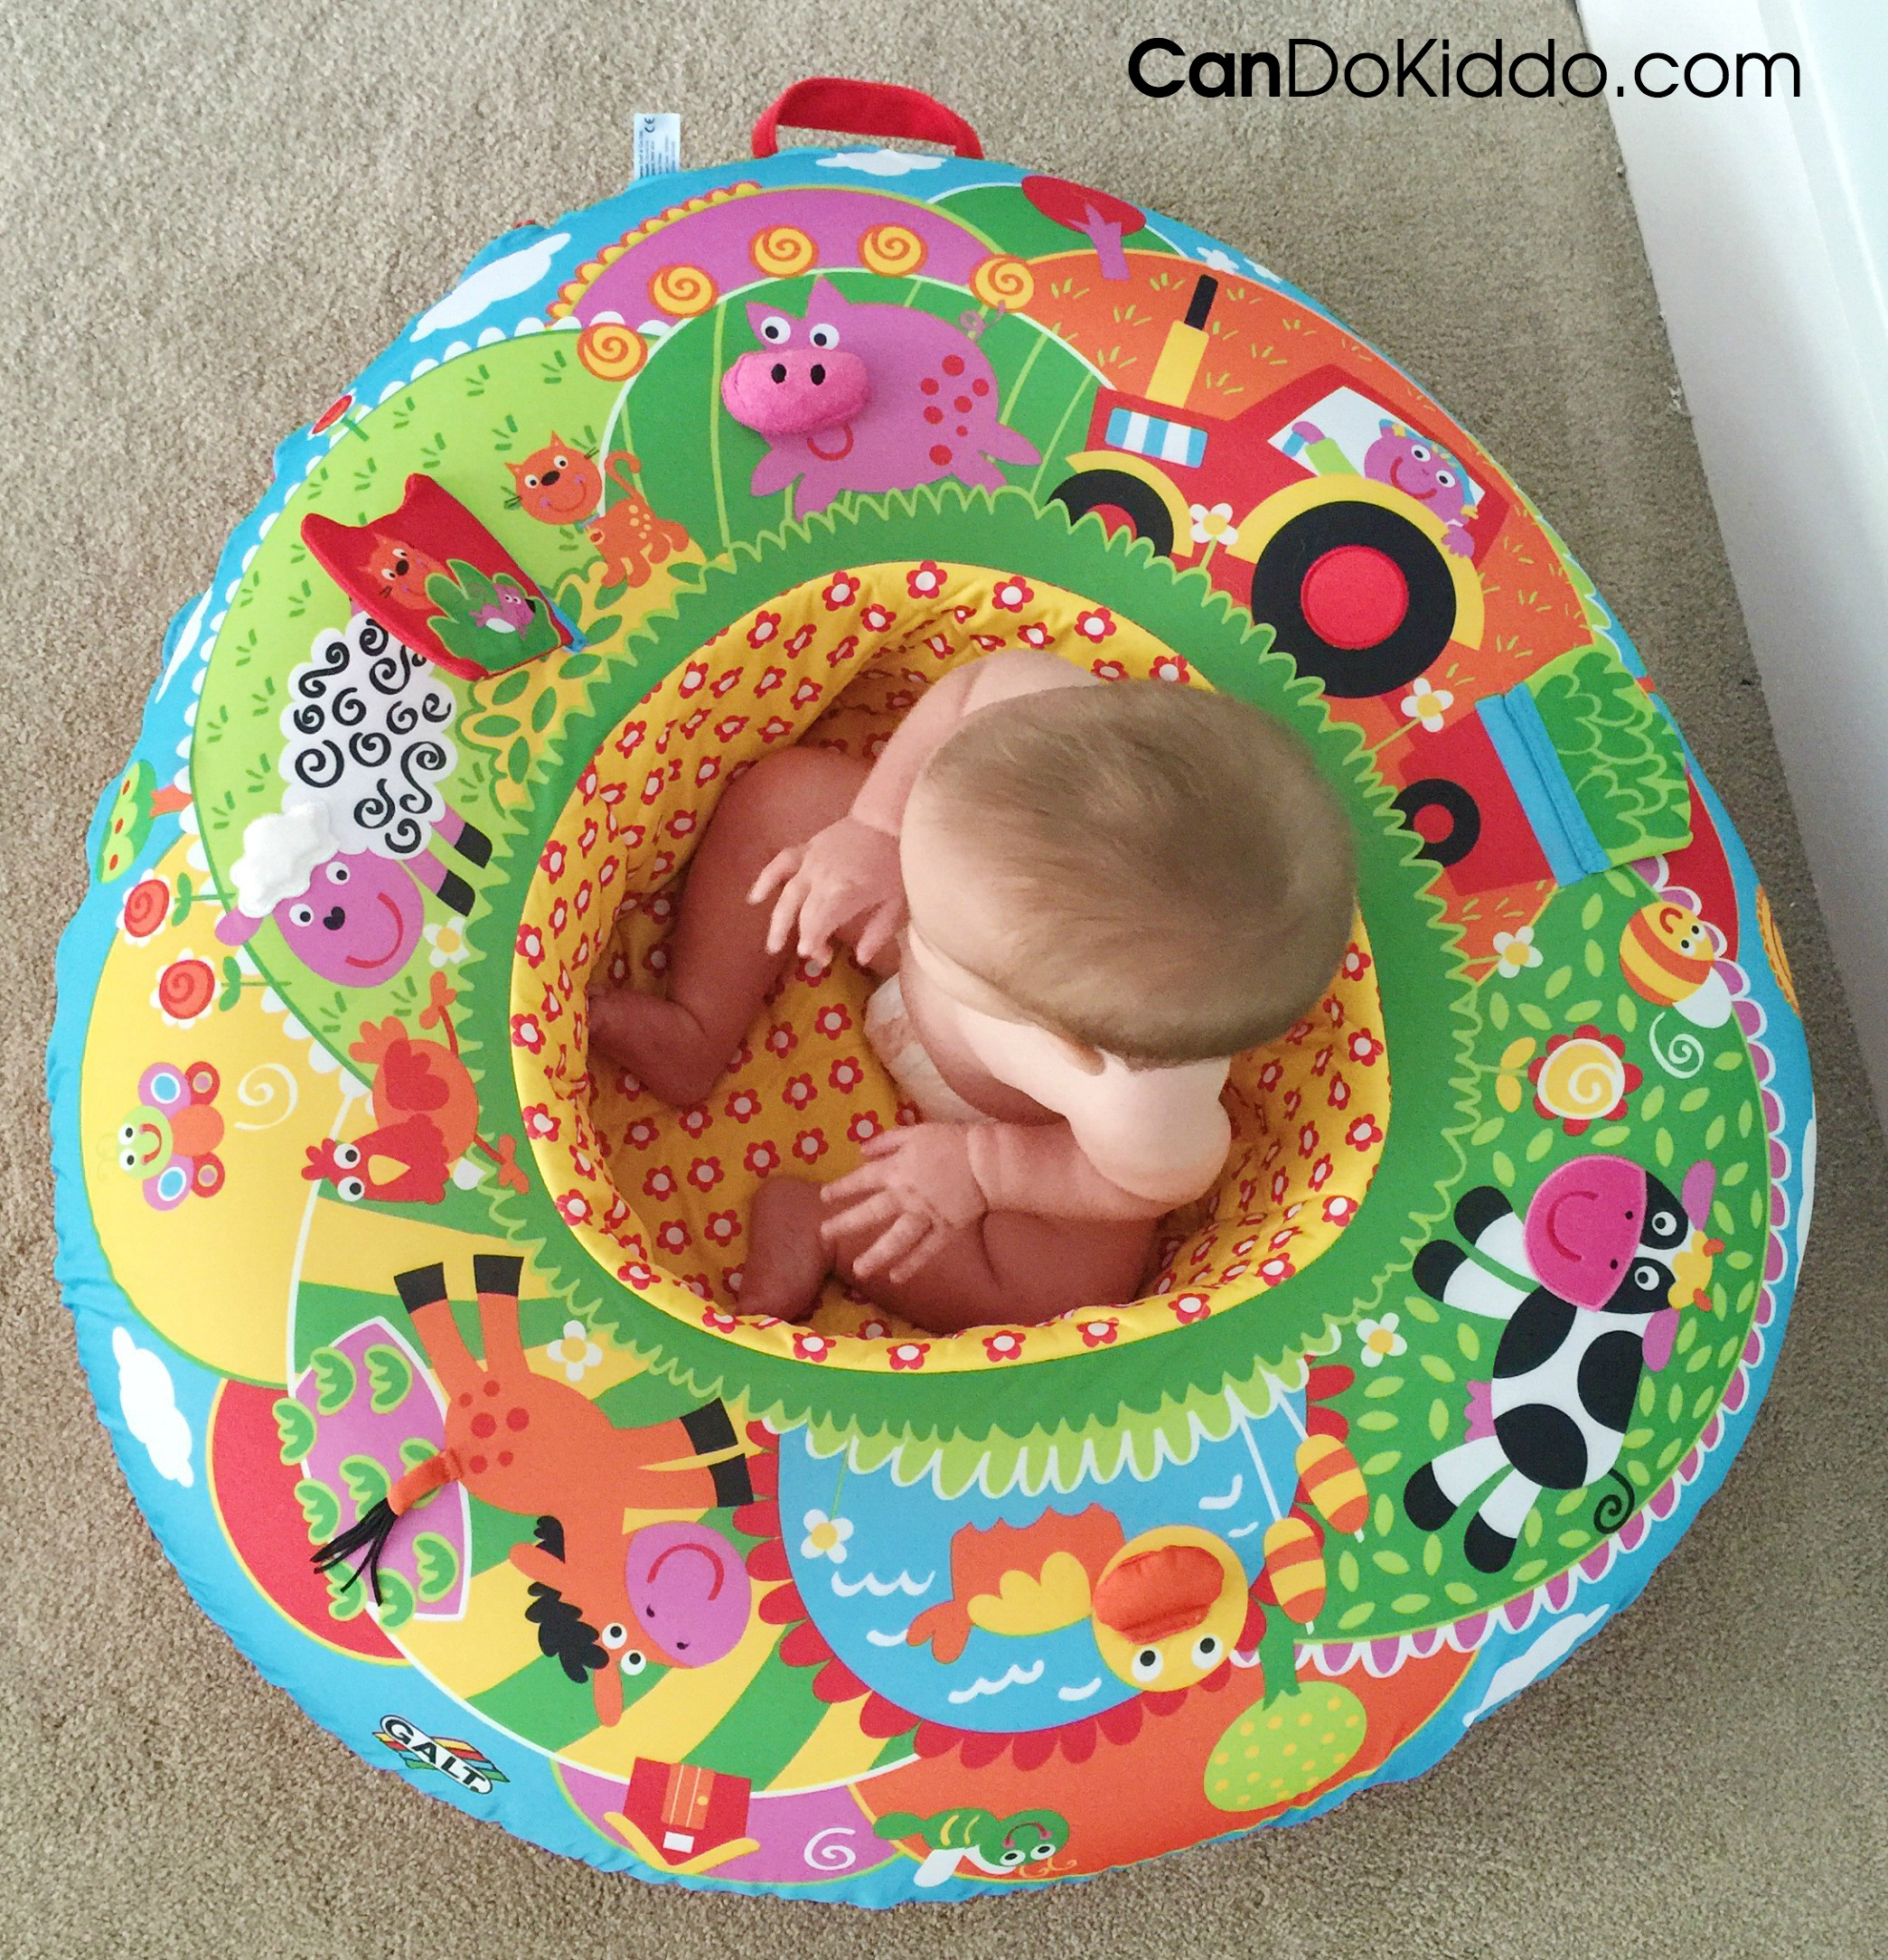 baby blow up ring chair best lounge for back choosing the seat and using it wisely cando kiddo a great choice candokiddo com